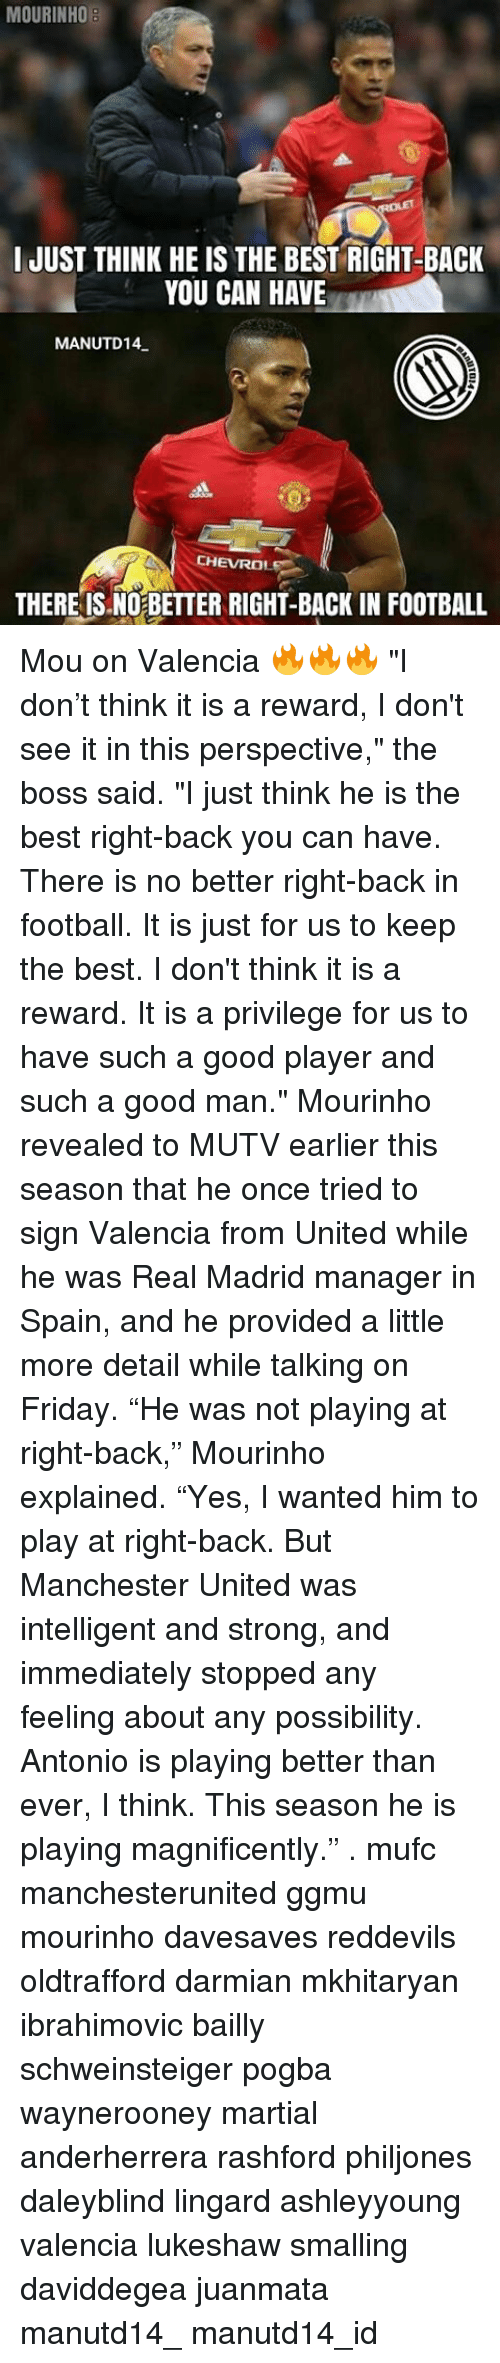 """Memes, Real Madrid, and Manchester United: MOURINHO  I JUST THINK HE IS THE BEST RIGHT-BACK  YOU CAN HAVE  MANUTD14  CHEVRO  THERE IS NO BETTER RIGHT-BACK IN FOOTBALL Mou on Valencia 🔥🔥🔥 """"I don't think it is a reward, I don't see it in this perspective,"""" the boss said. """"I just think he is the best right-back you can have. There is no better right-back in football. It is just for us to keep the best. I don't think it is a reward. It is a privilege for us to have such a good player and such a good man."""" Mourinho revealed to MUTV earlier this season that he once tried to sign Valencia from United while he was Real Madrid manager in Spain, and he provided a little more detail while talking on Friday. """"He was not playing at right-back,"""" Mourinho explained. """"Yes, I wanted him to play at right-back. But Manchester United was intelligent and strong, and immediately stopped any feeling about any possibility. Antonio is playing better than ever, I think. This season he is playing magnificently."""" . mufc manchesterunited ggmu mourinho davesaves reddevils oldtrafford darmian mkhitaryan ibrahimovic bailly schweinsteiger pogba waynerooney martial anderherrera rashford philjones daleyblind lingard ashleyyoung valencia lukeshaw smalling daviddegea juanmata manutd14_ manutd14_id"""